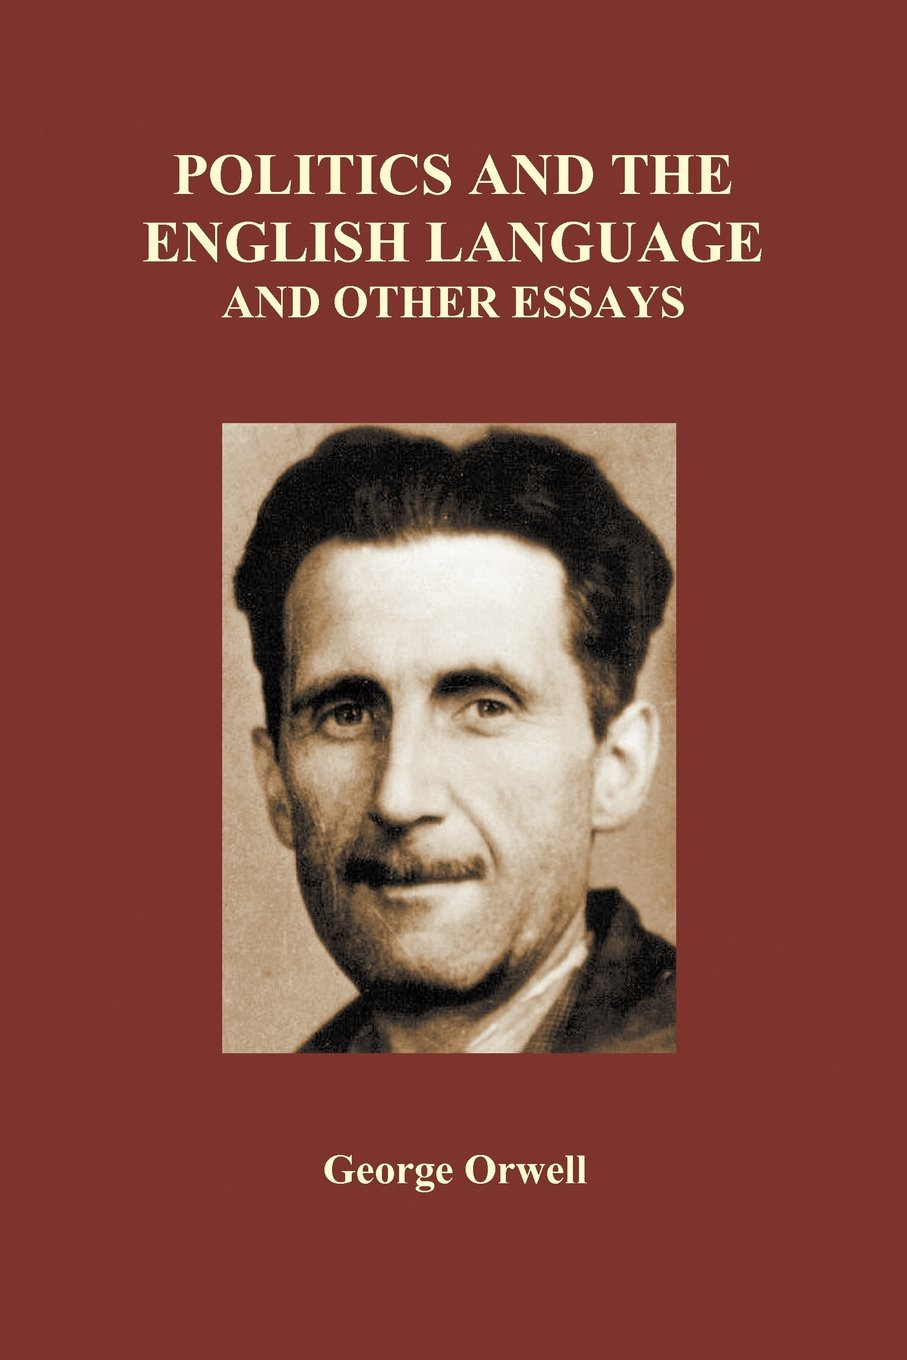 politics and the english language and other essays paperback politics and the english language and other essays paperback amazon co uk george orwell 9781849028363 books